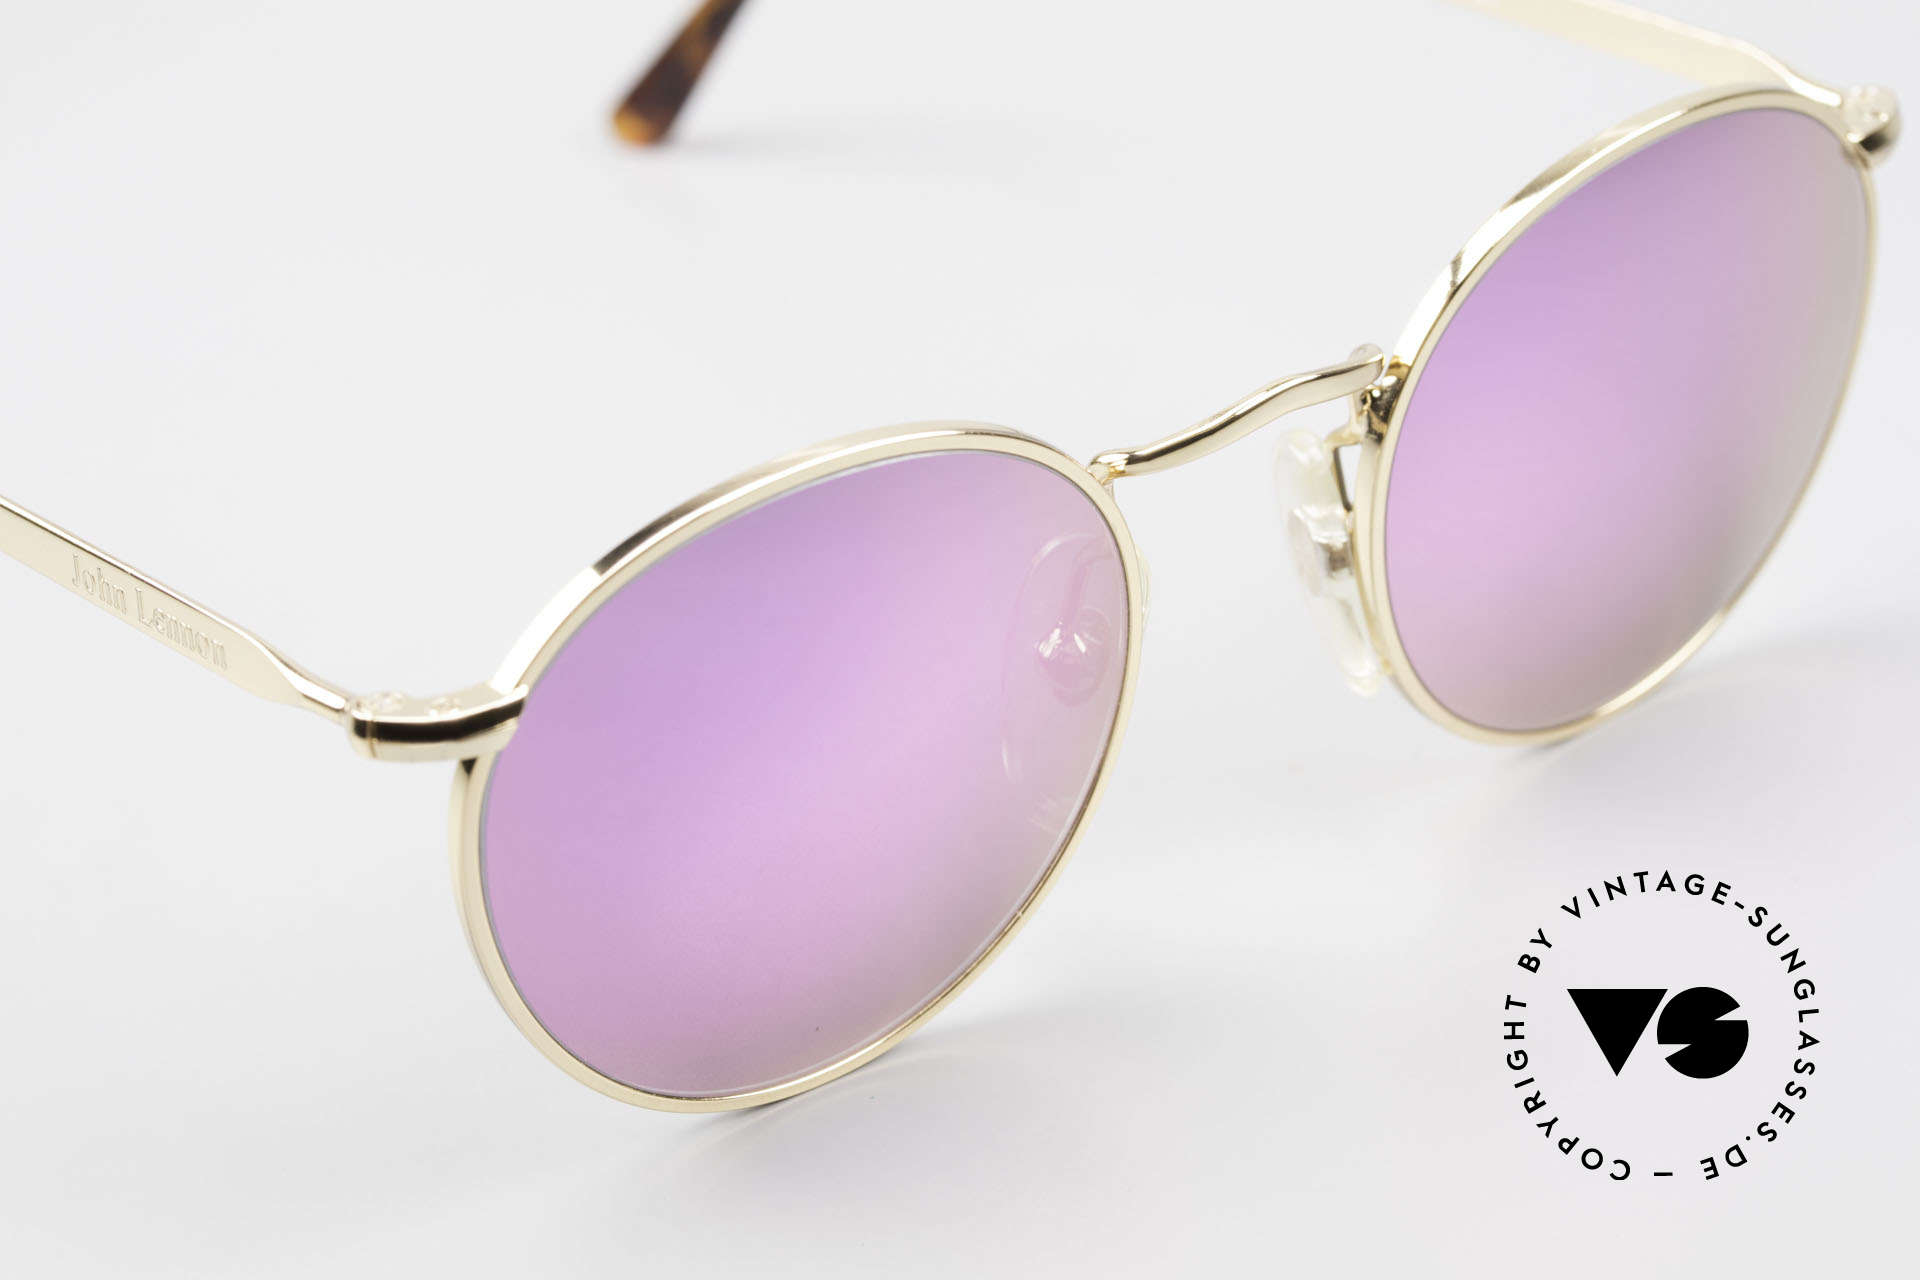 John Lennon - The Dreamer With Pink Mirrored Sun Lenses, NO RETRO PANTO SUNGLASSES; but a rare old ORIGINAL, Made for Men and Women